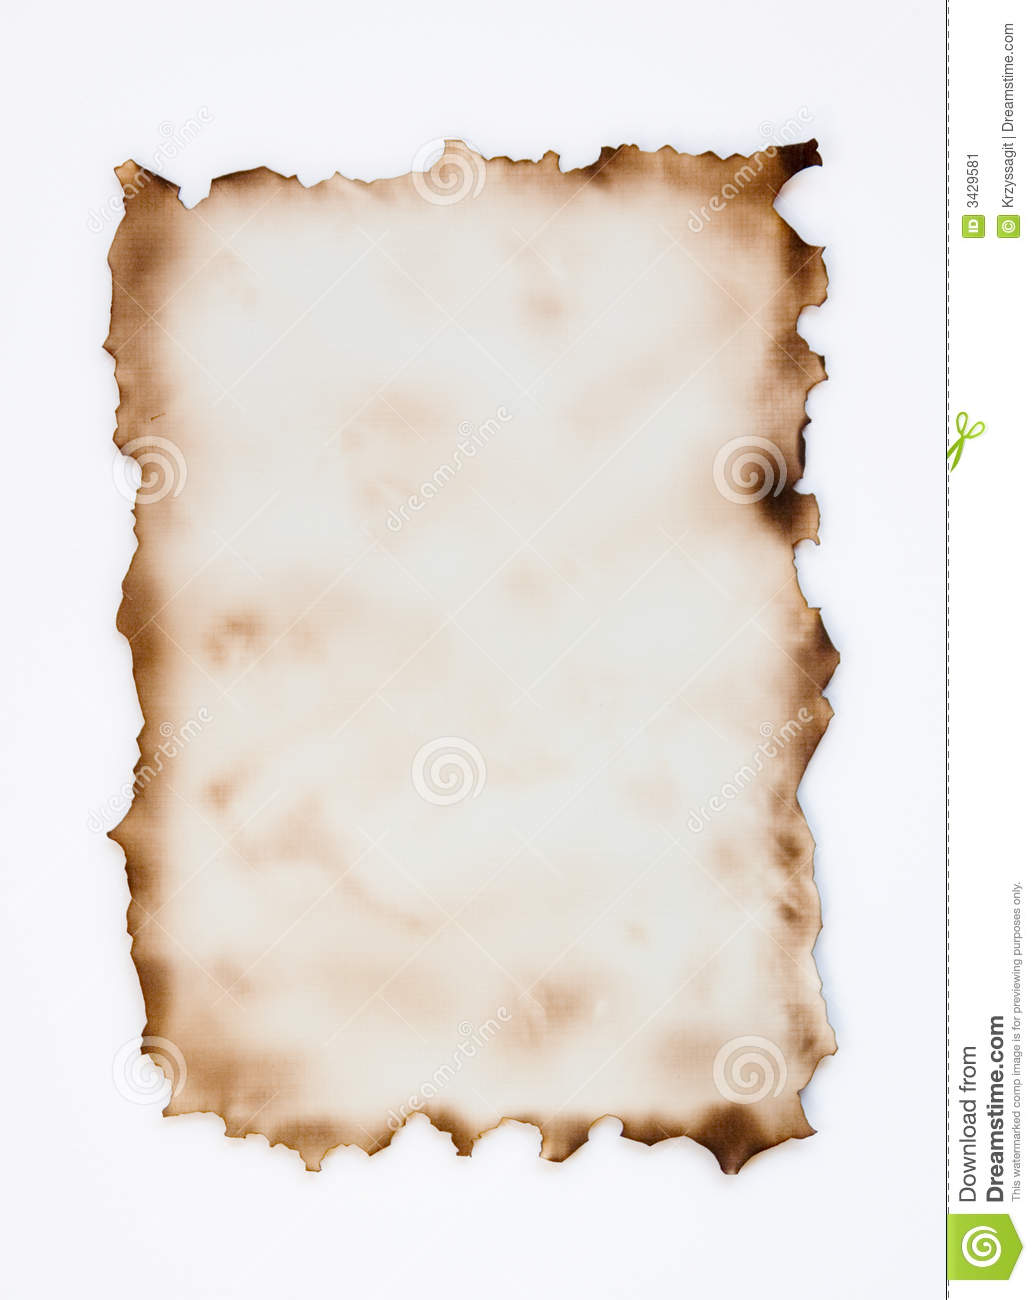 Burnt Parchment Stock Image - Image: 3429581